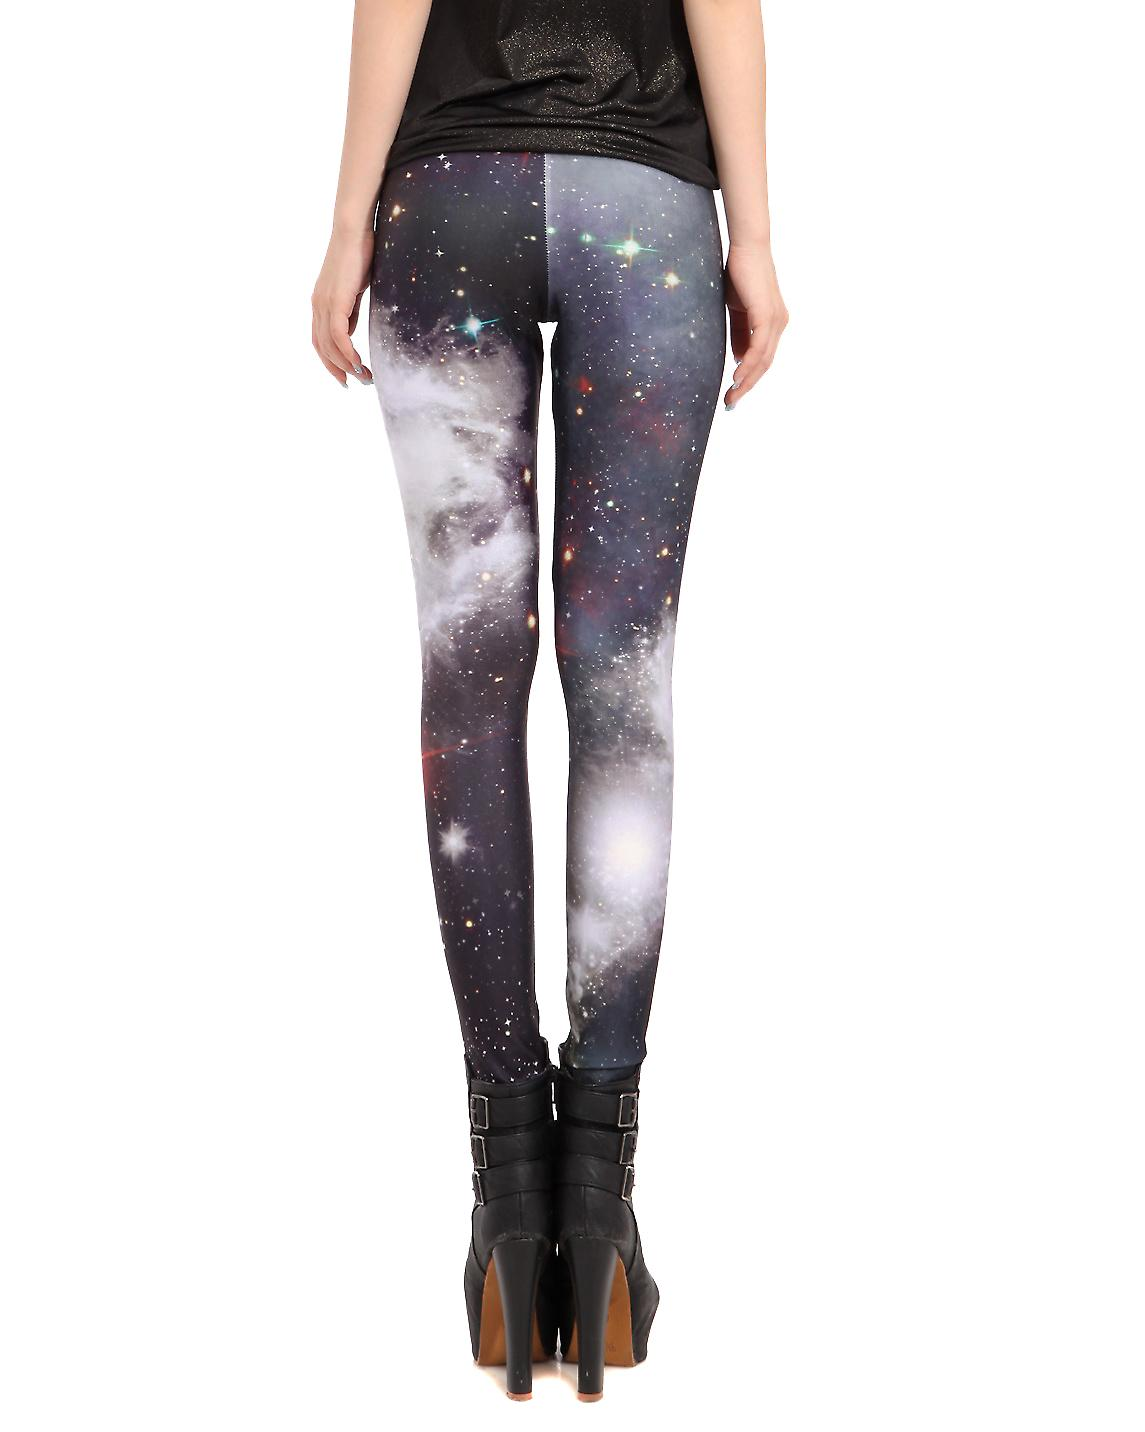 Waooh - Fashion - Leggings long fantasy - Galaxy cloud